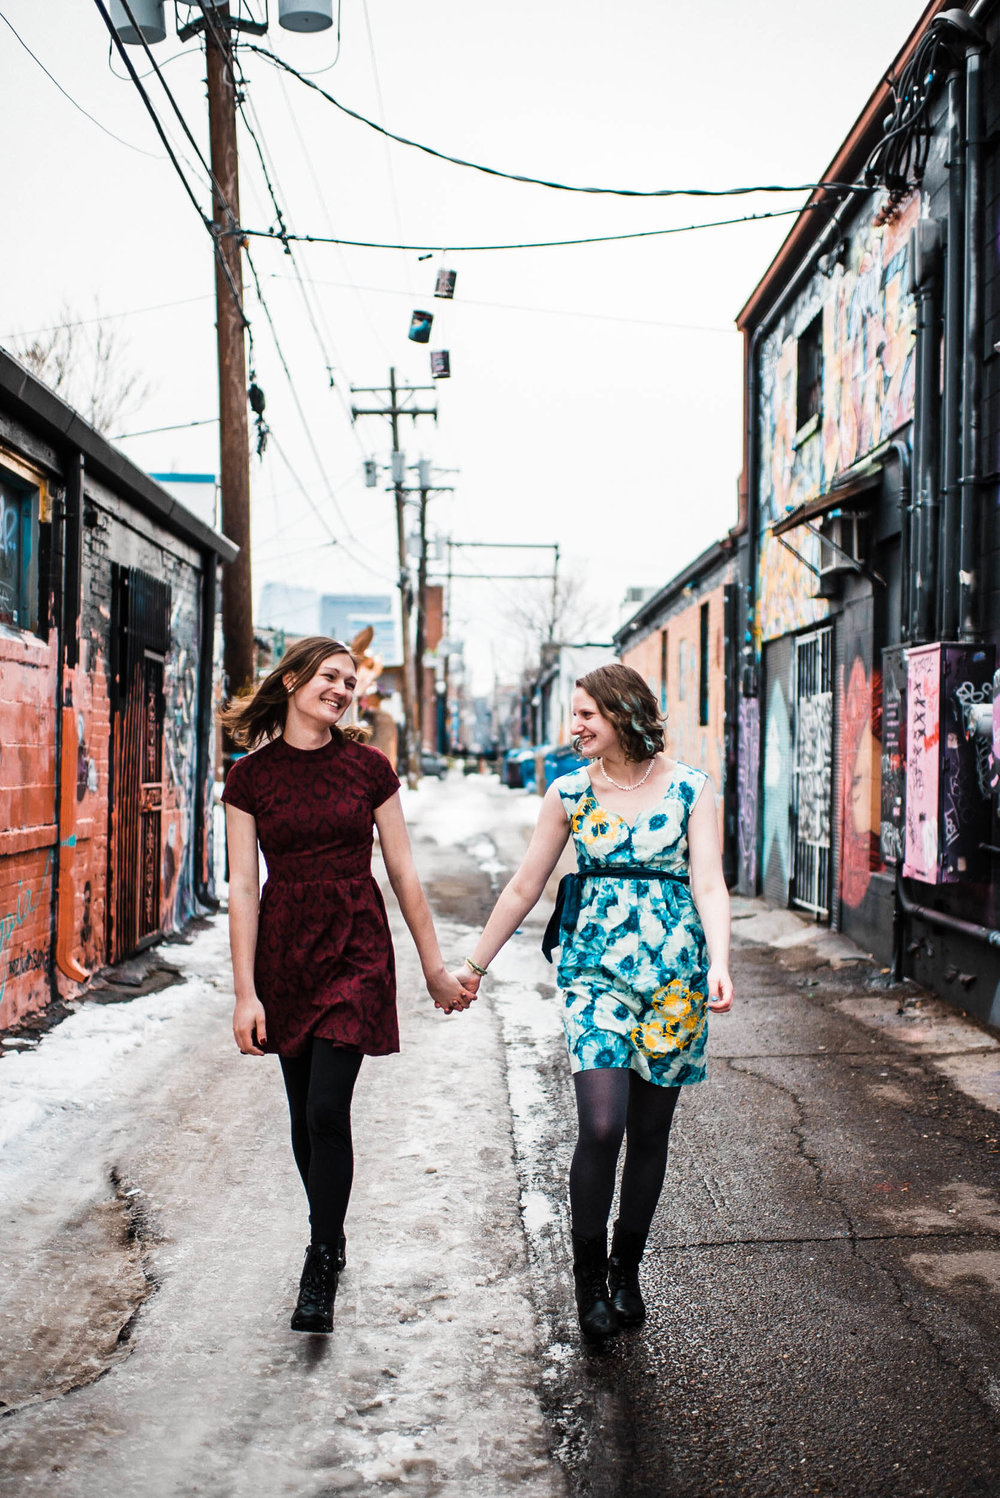 Beautiful lesbian trans couple walking down the alley in Denver Colorado RiNo art mural, RiNo Arts District, RiNo engagement session, LGBT wedding photographers, LGBT friendly wedding photographers, LGBT engagement photographers, Denver wedding photographers, Denver Engagement photographers